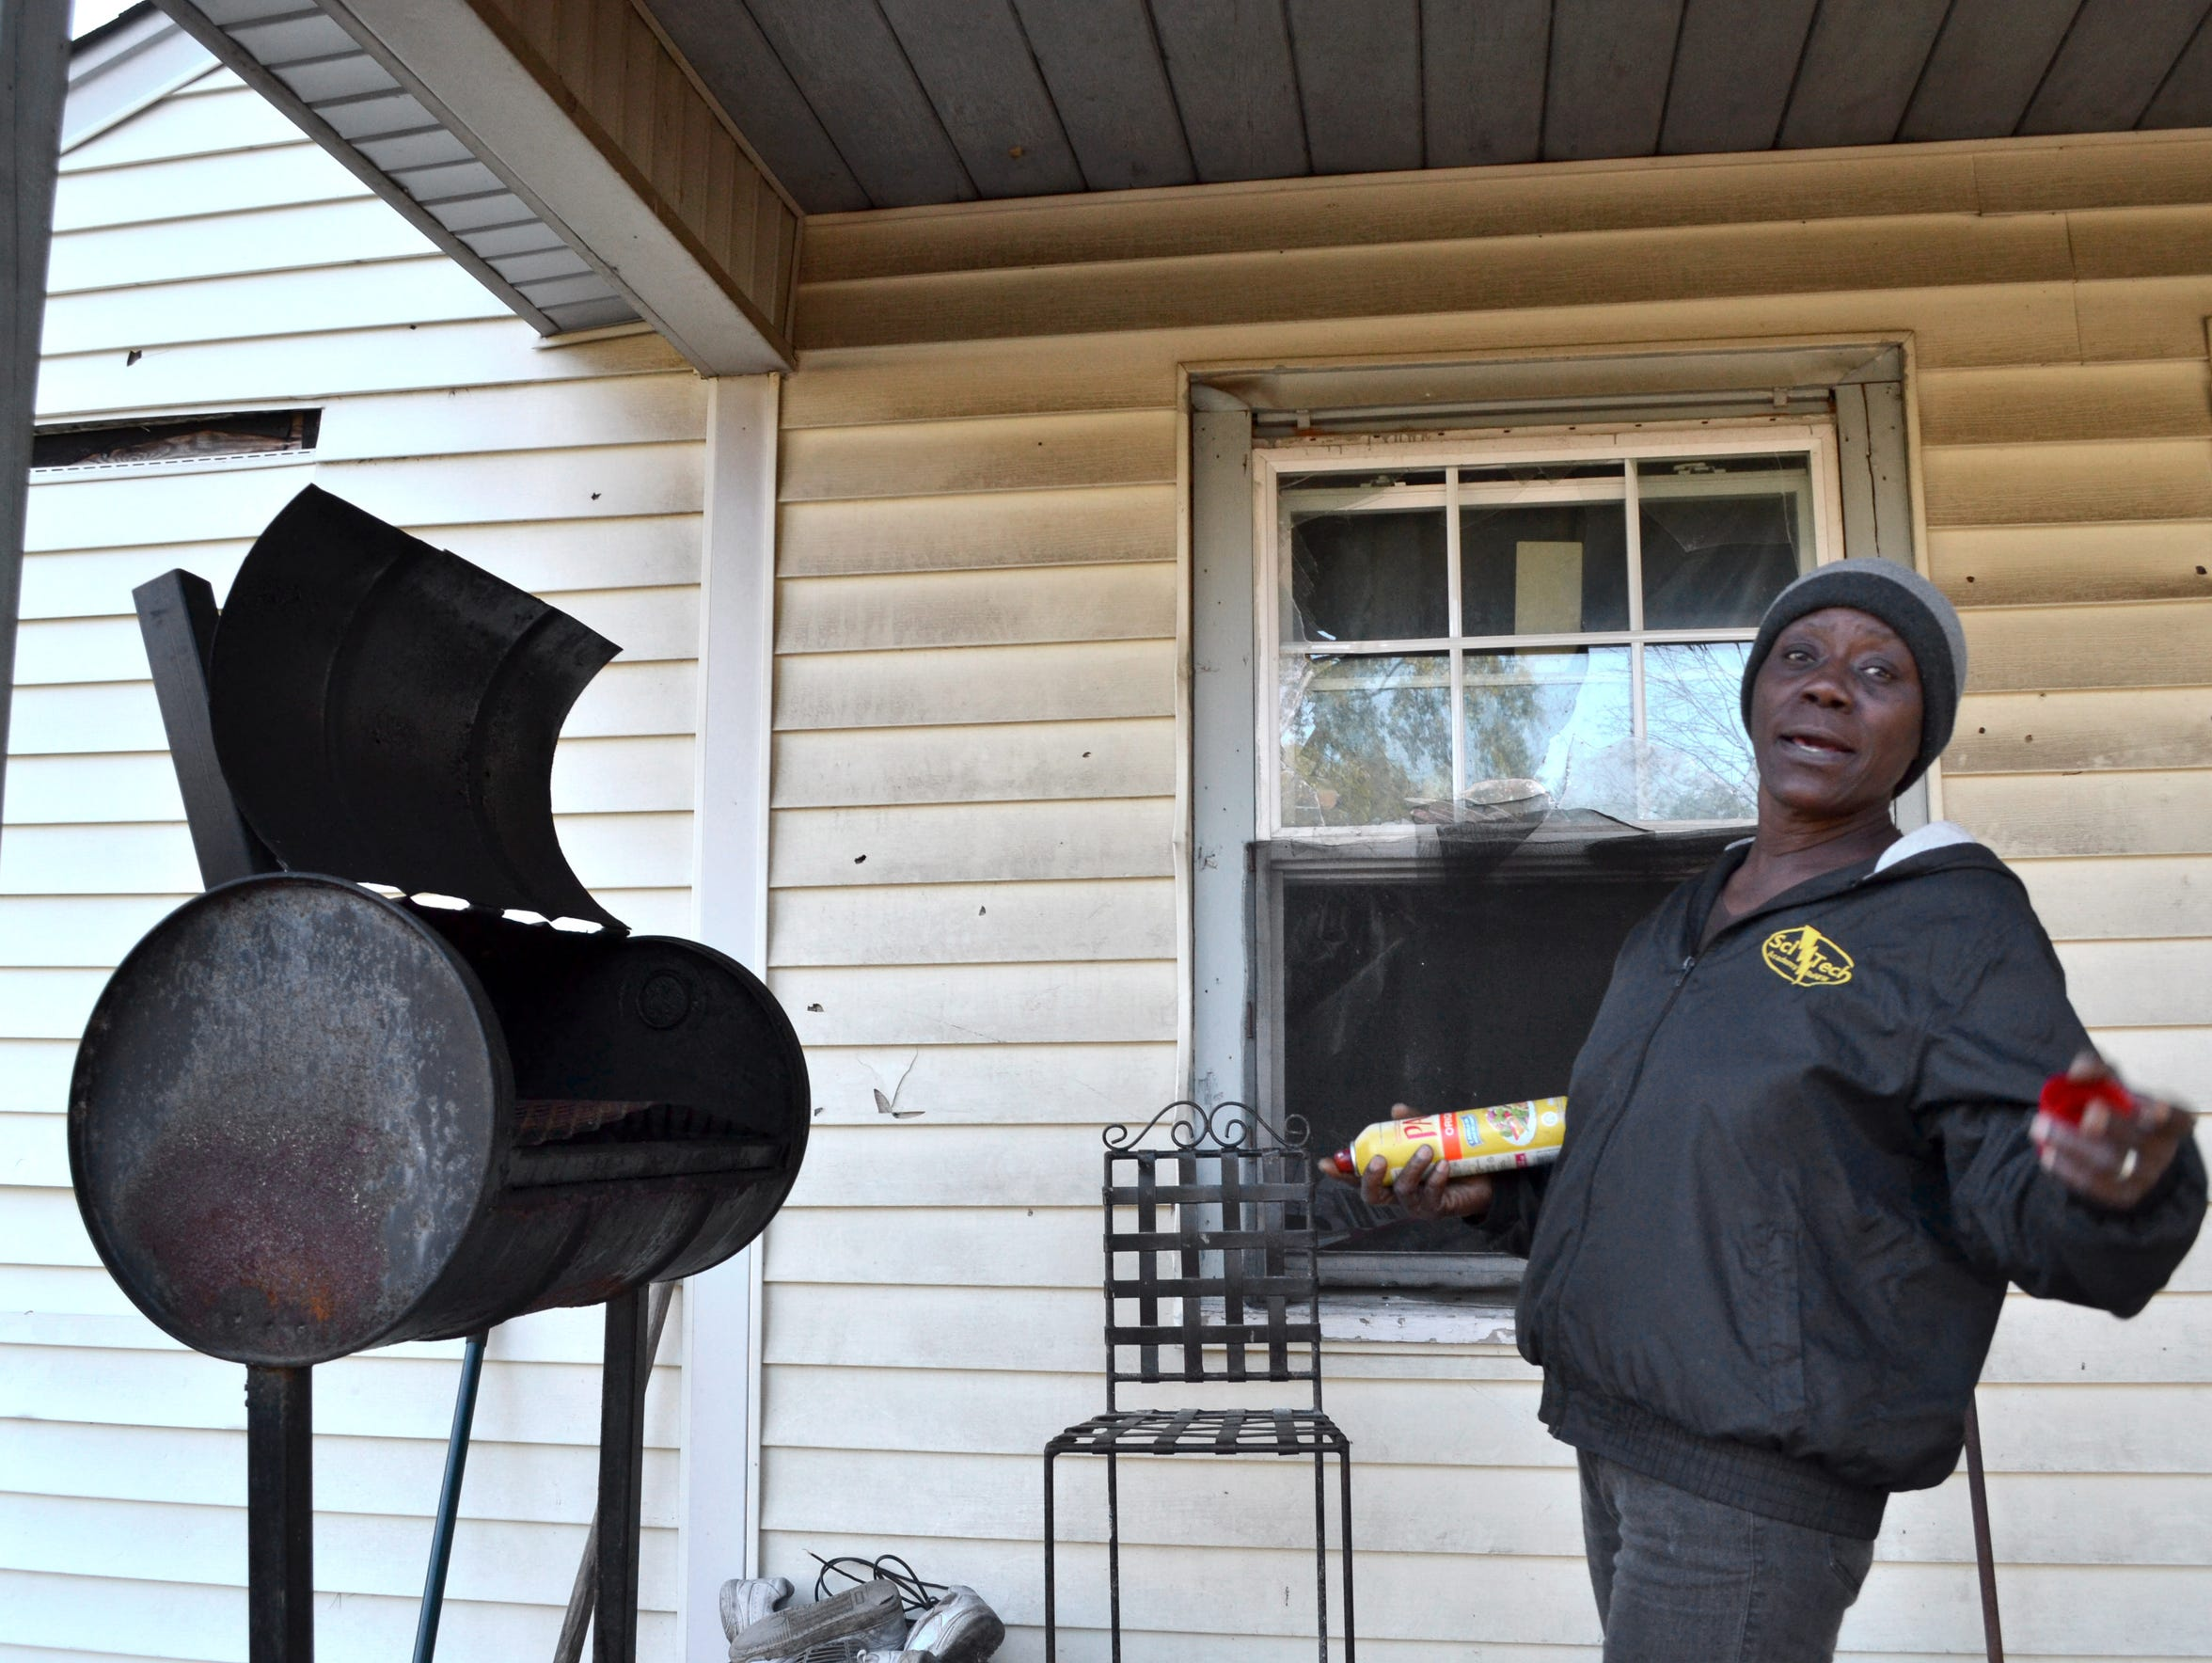 Patricia Aaron stands by the grill outside her house, down the street from where she's currently living. The house needs work, which she said she expects she can afford to do next year.